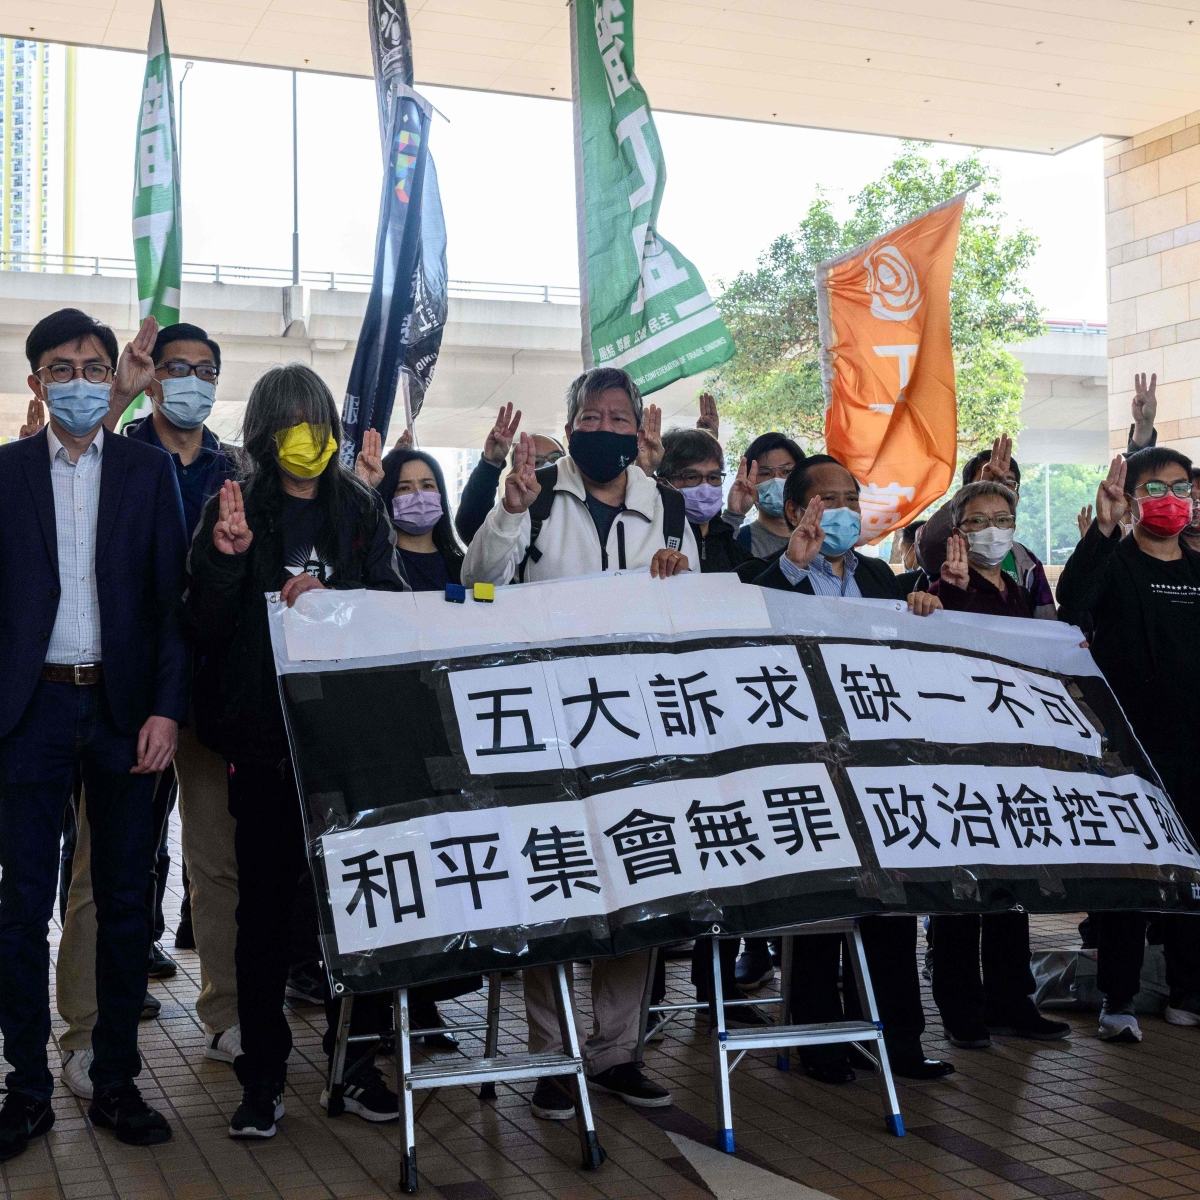 2019 Hong Kong anti-govt protests: Two former lawmakers plead guilty to illegal assembly charges